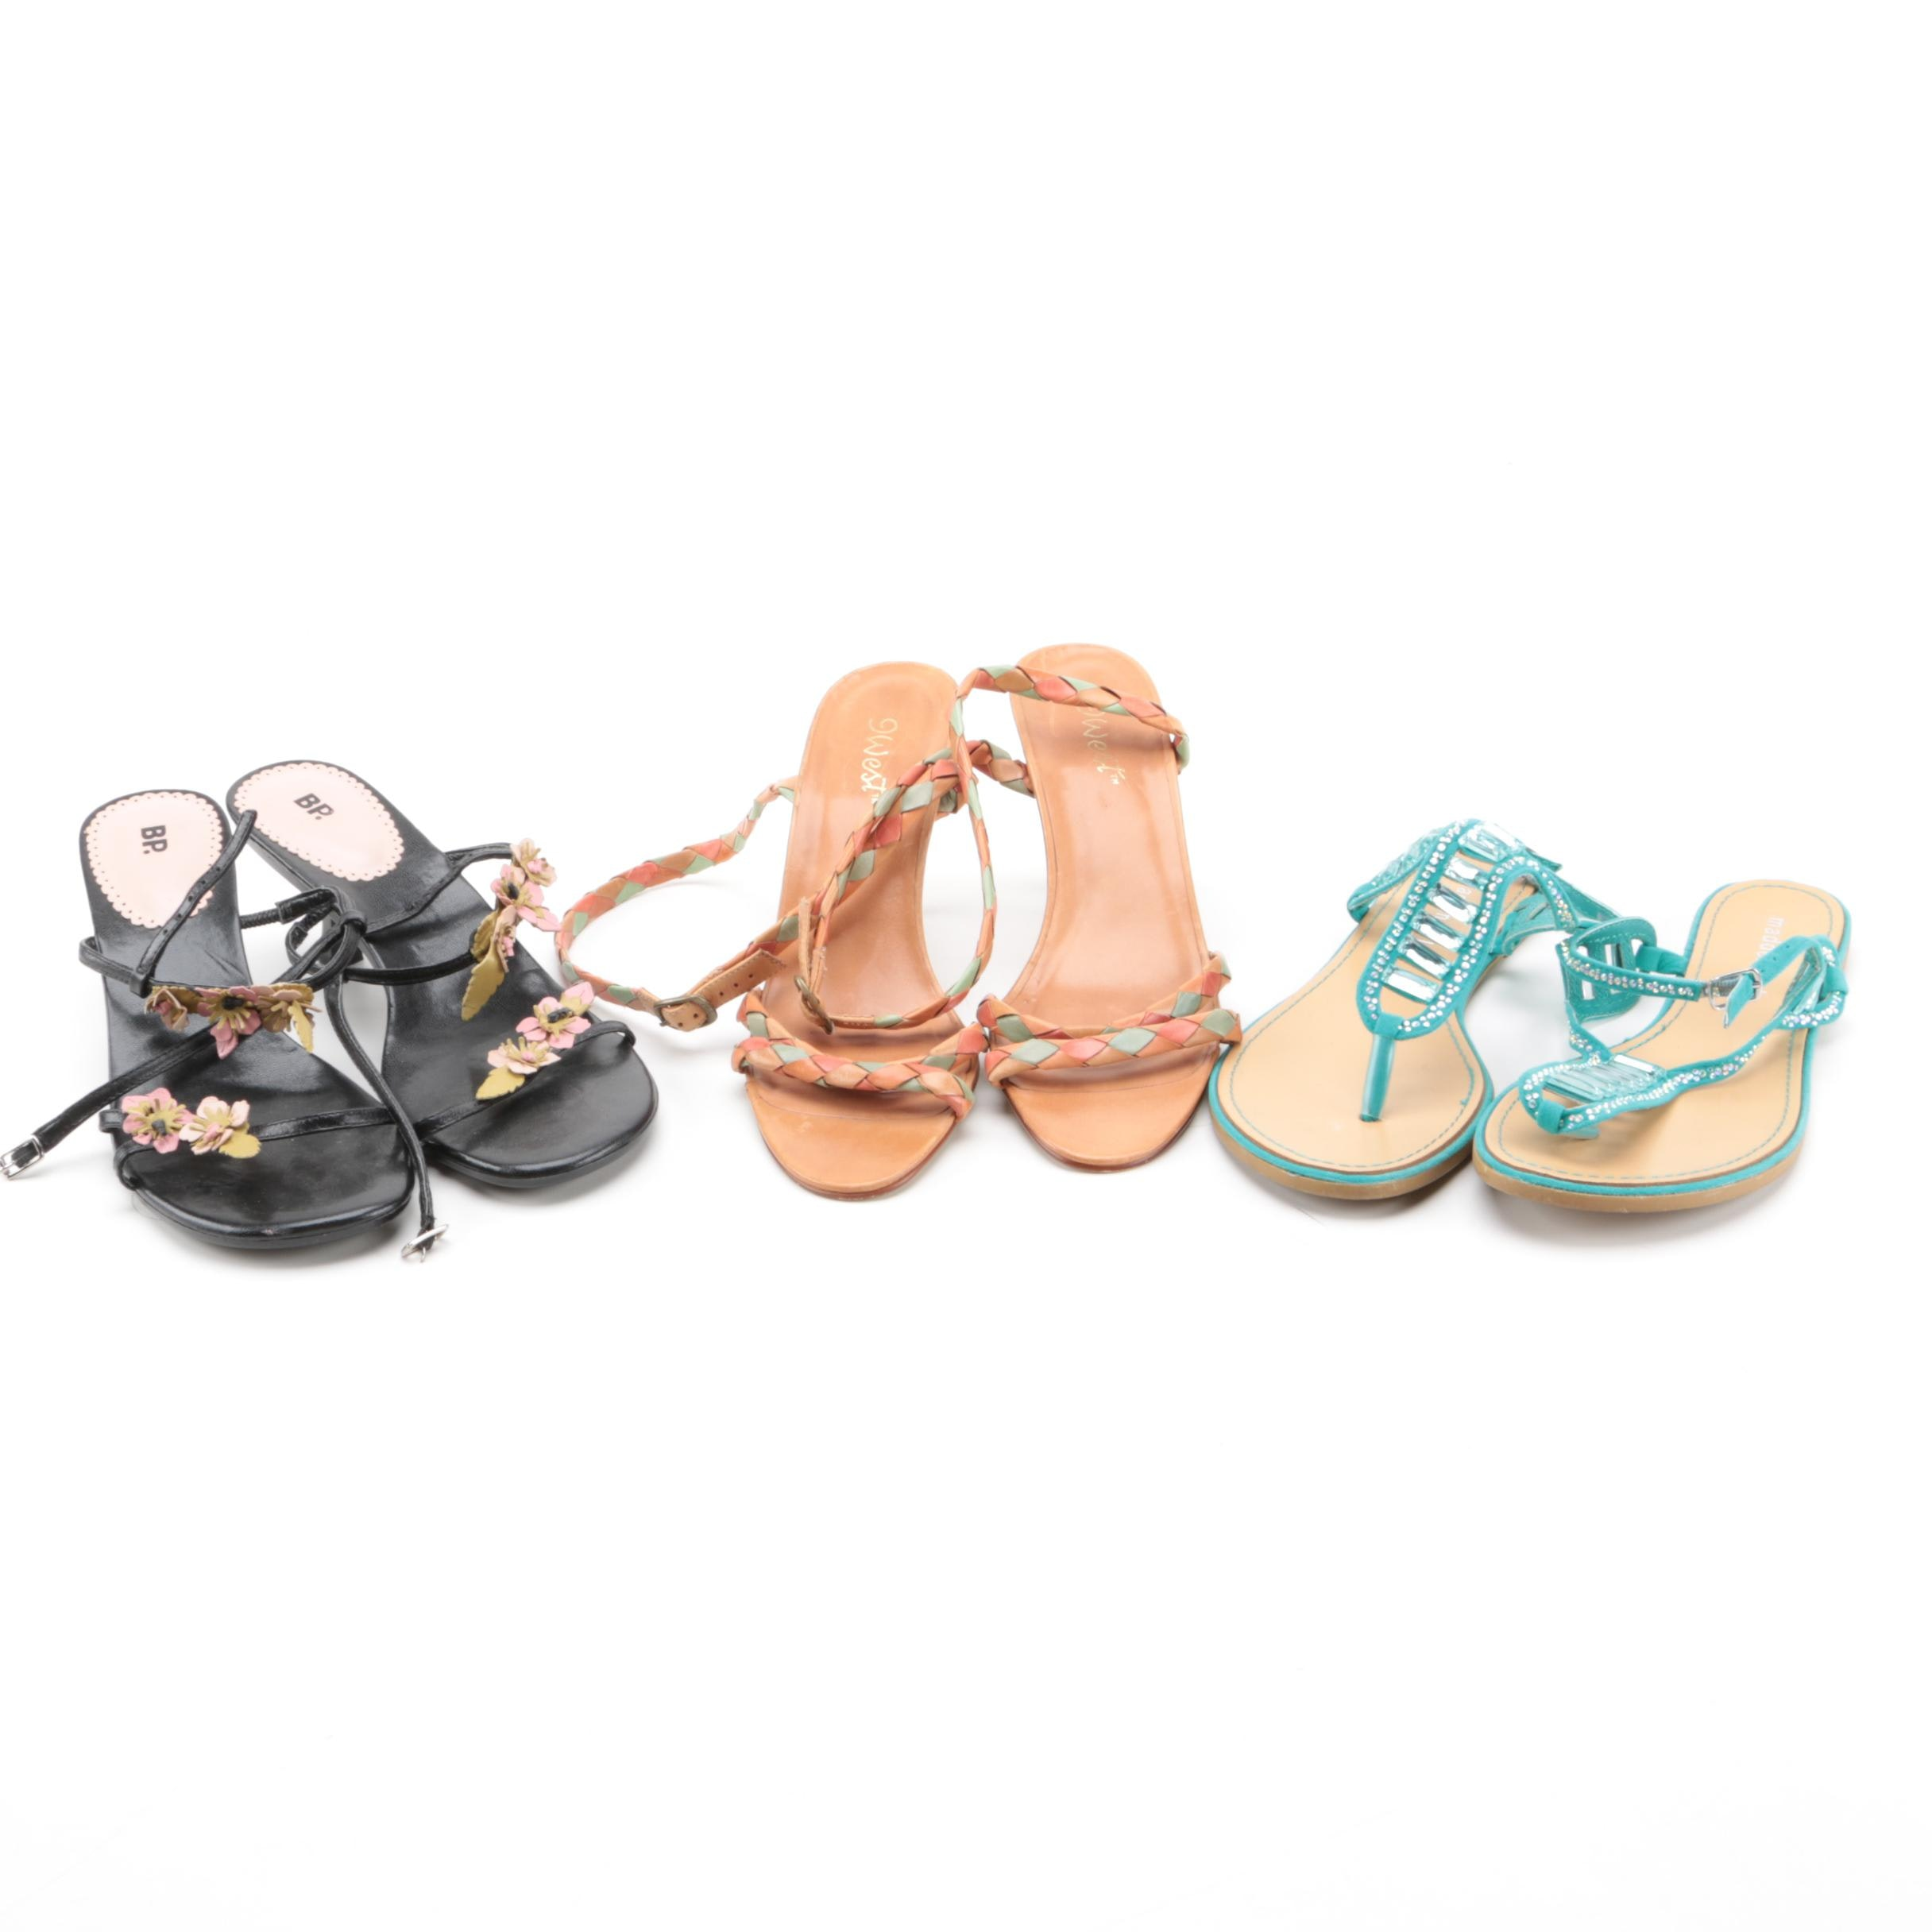 Women's Shoes Including Madden Girl and 9 West